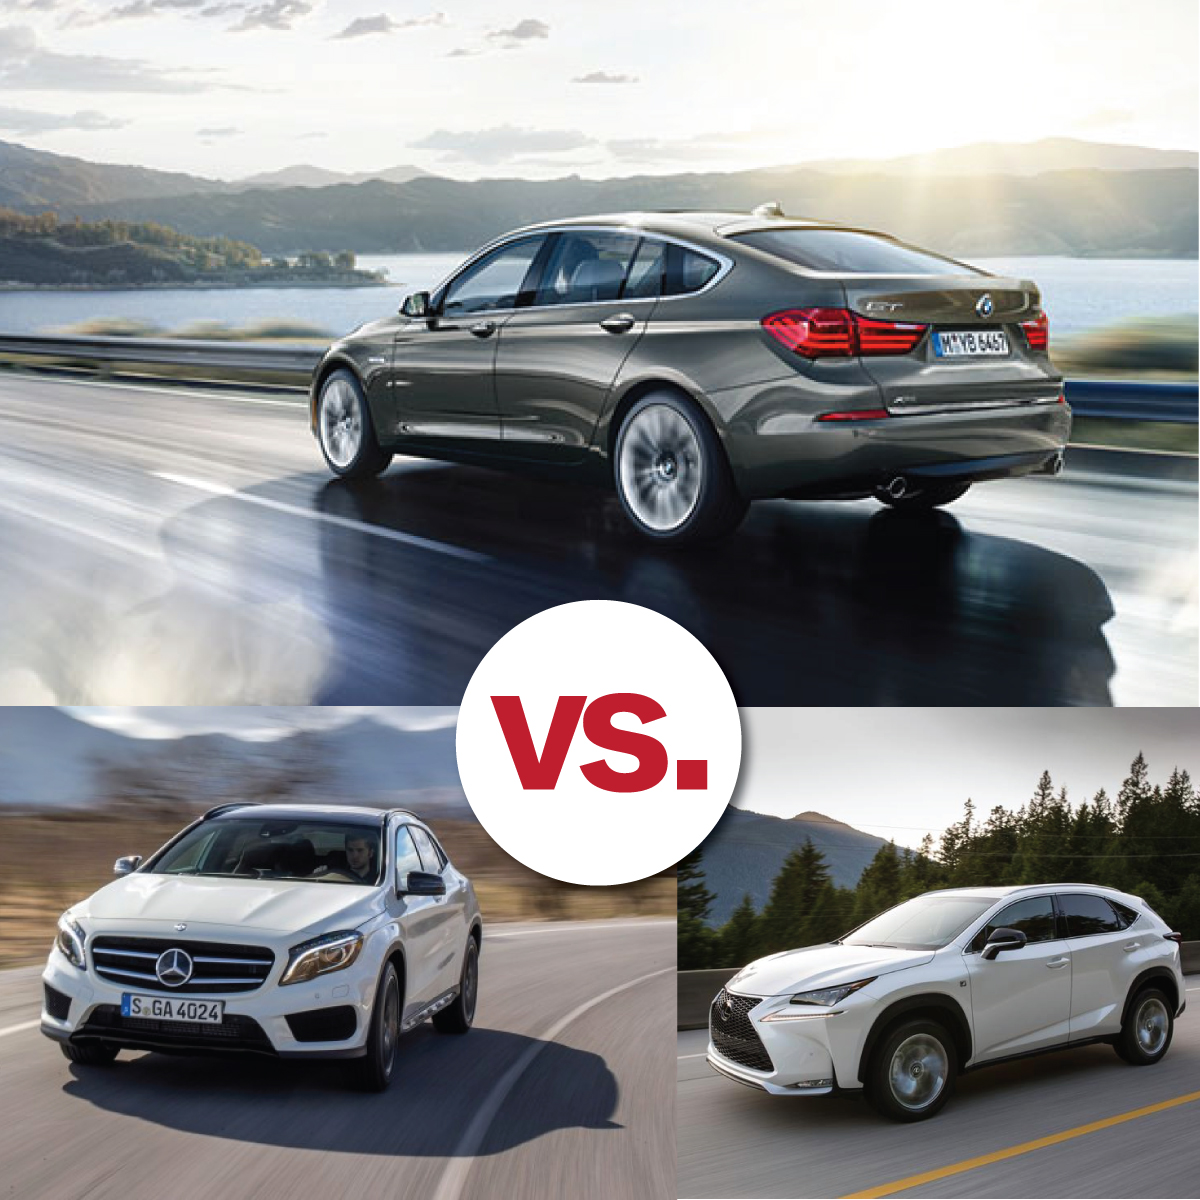 Comparison Shop Bmw 5 Series V Lexus V Mercedez Benz South Bmw